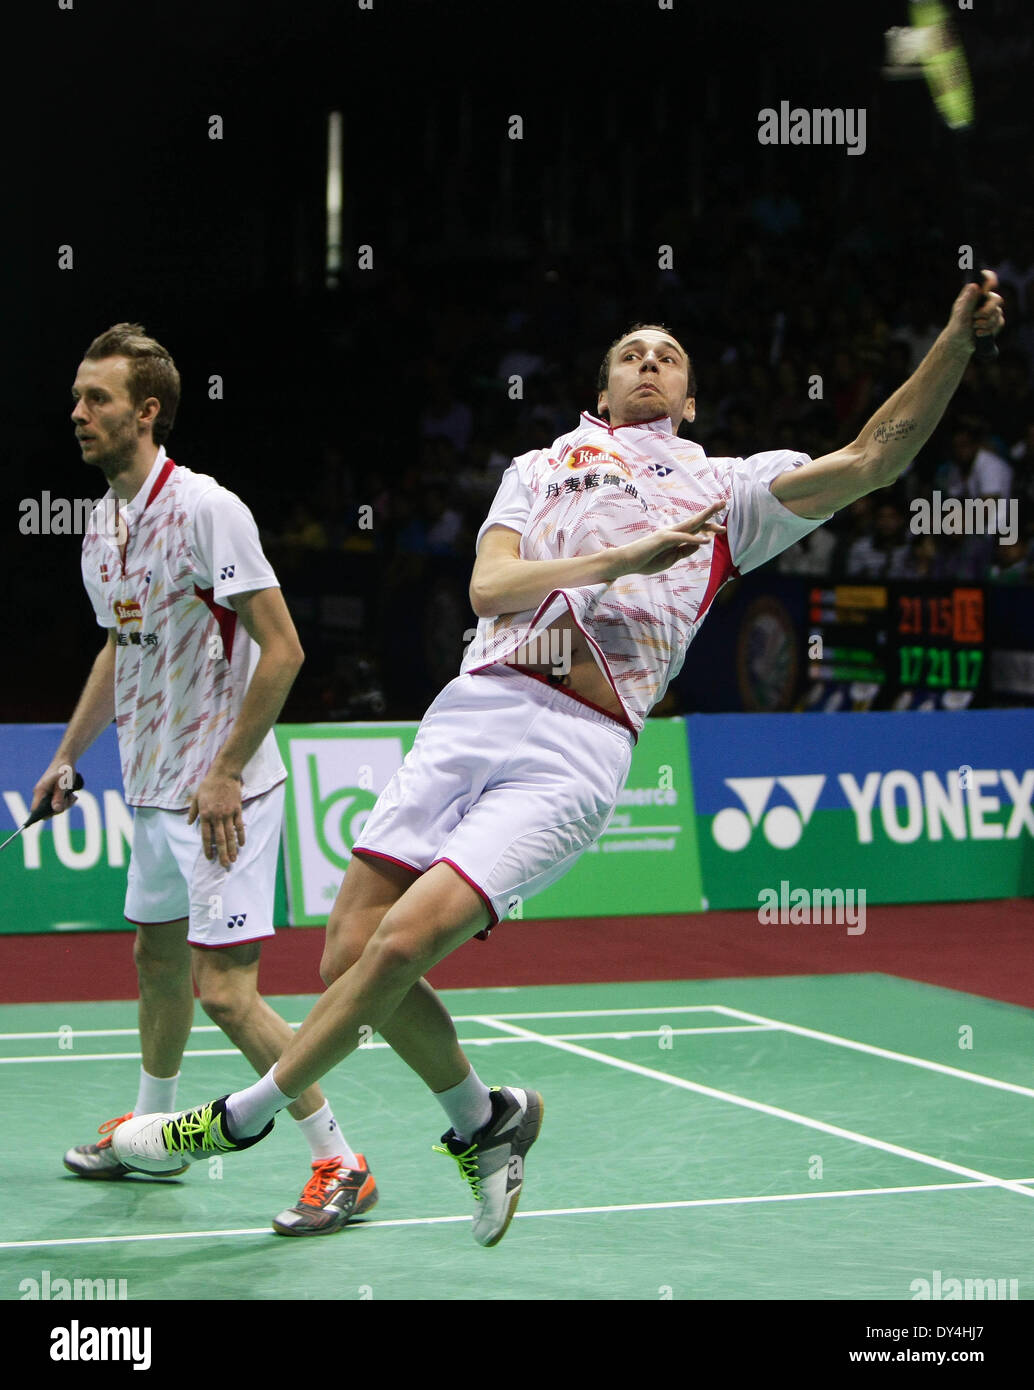 New Delhi India 6th Apr 2014 Mathias Boe R and Carsten